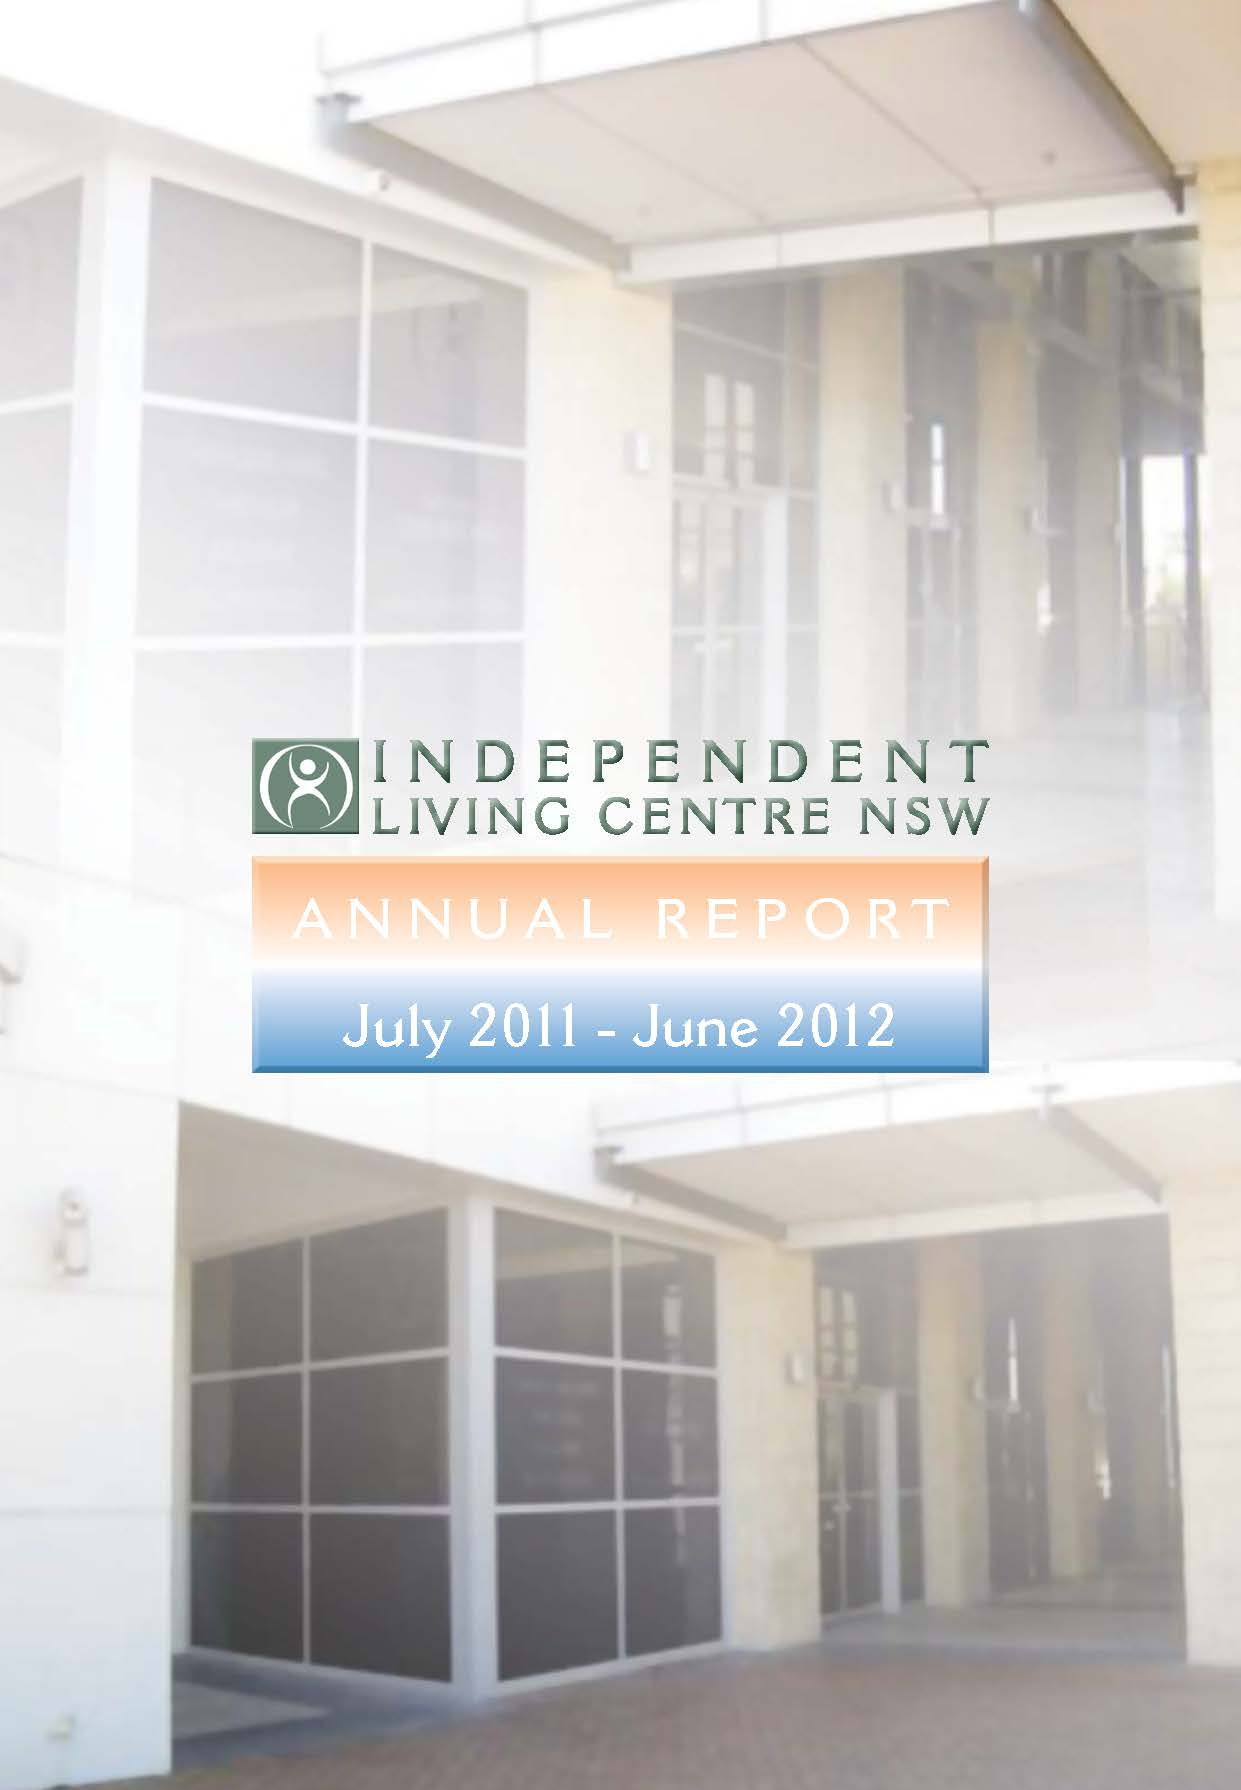 Cover of the 2011-2012 Annual Report showing the new ILC office exterior at Westpoint Blacktown